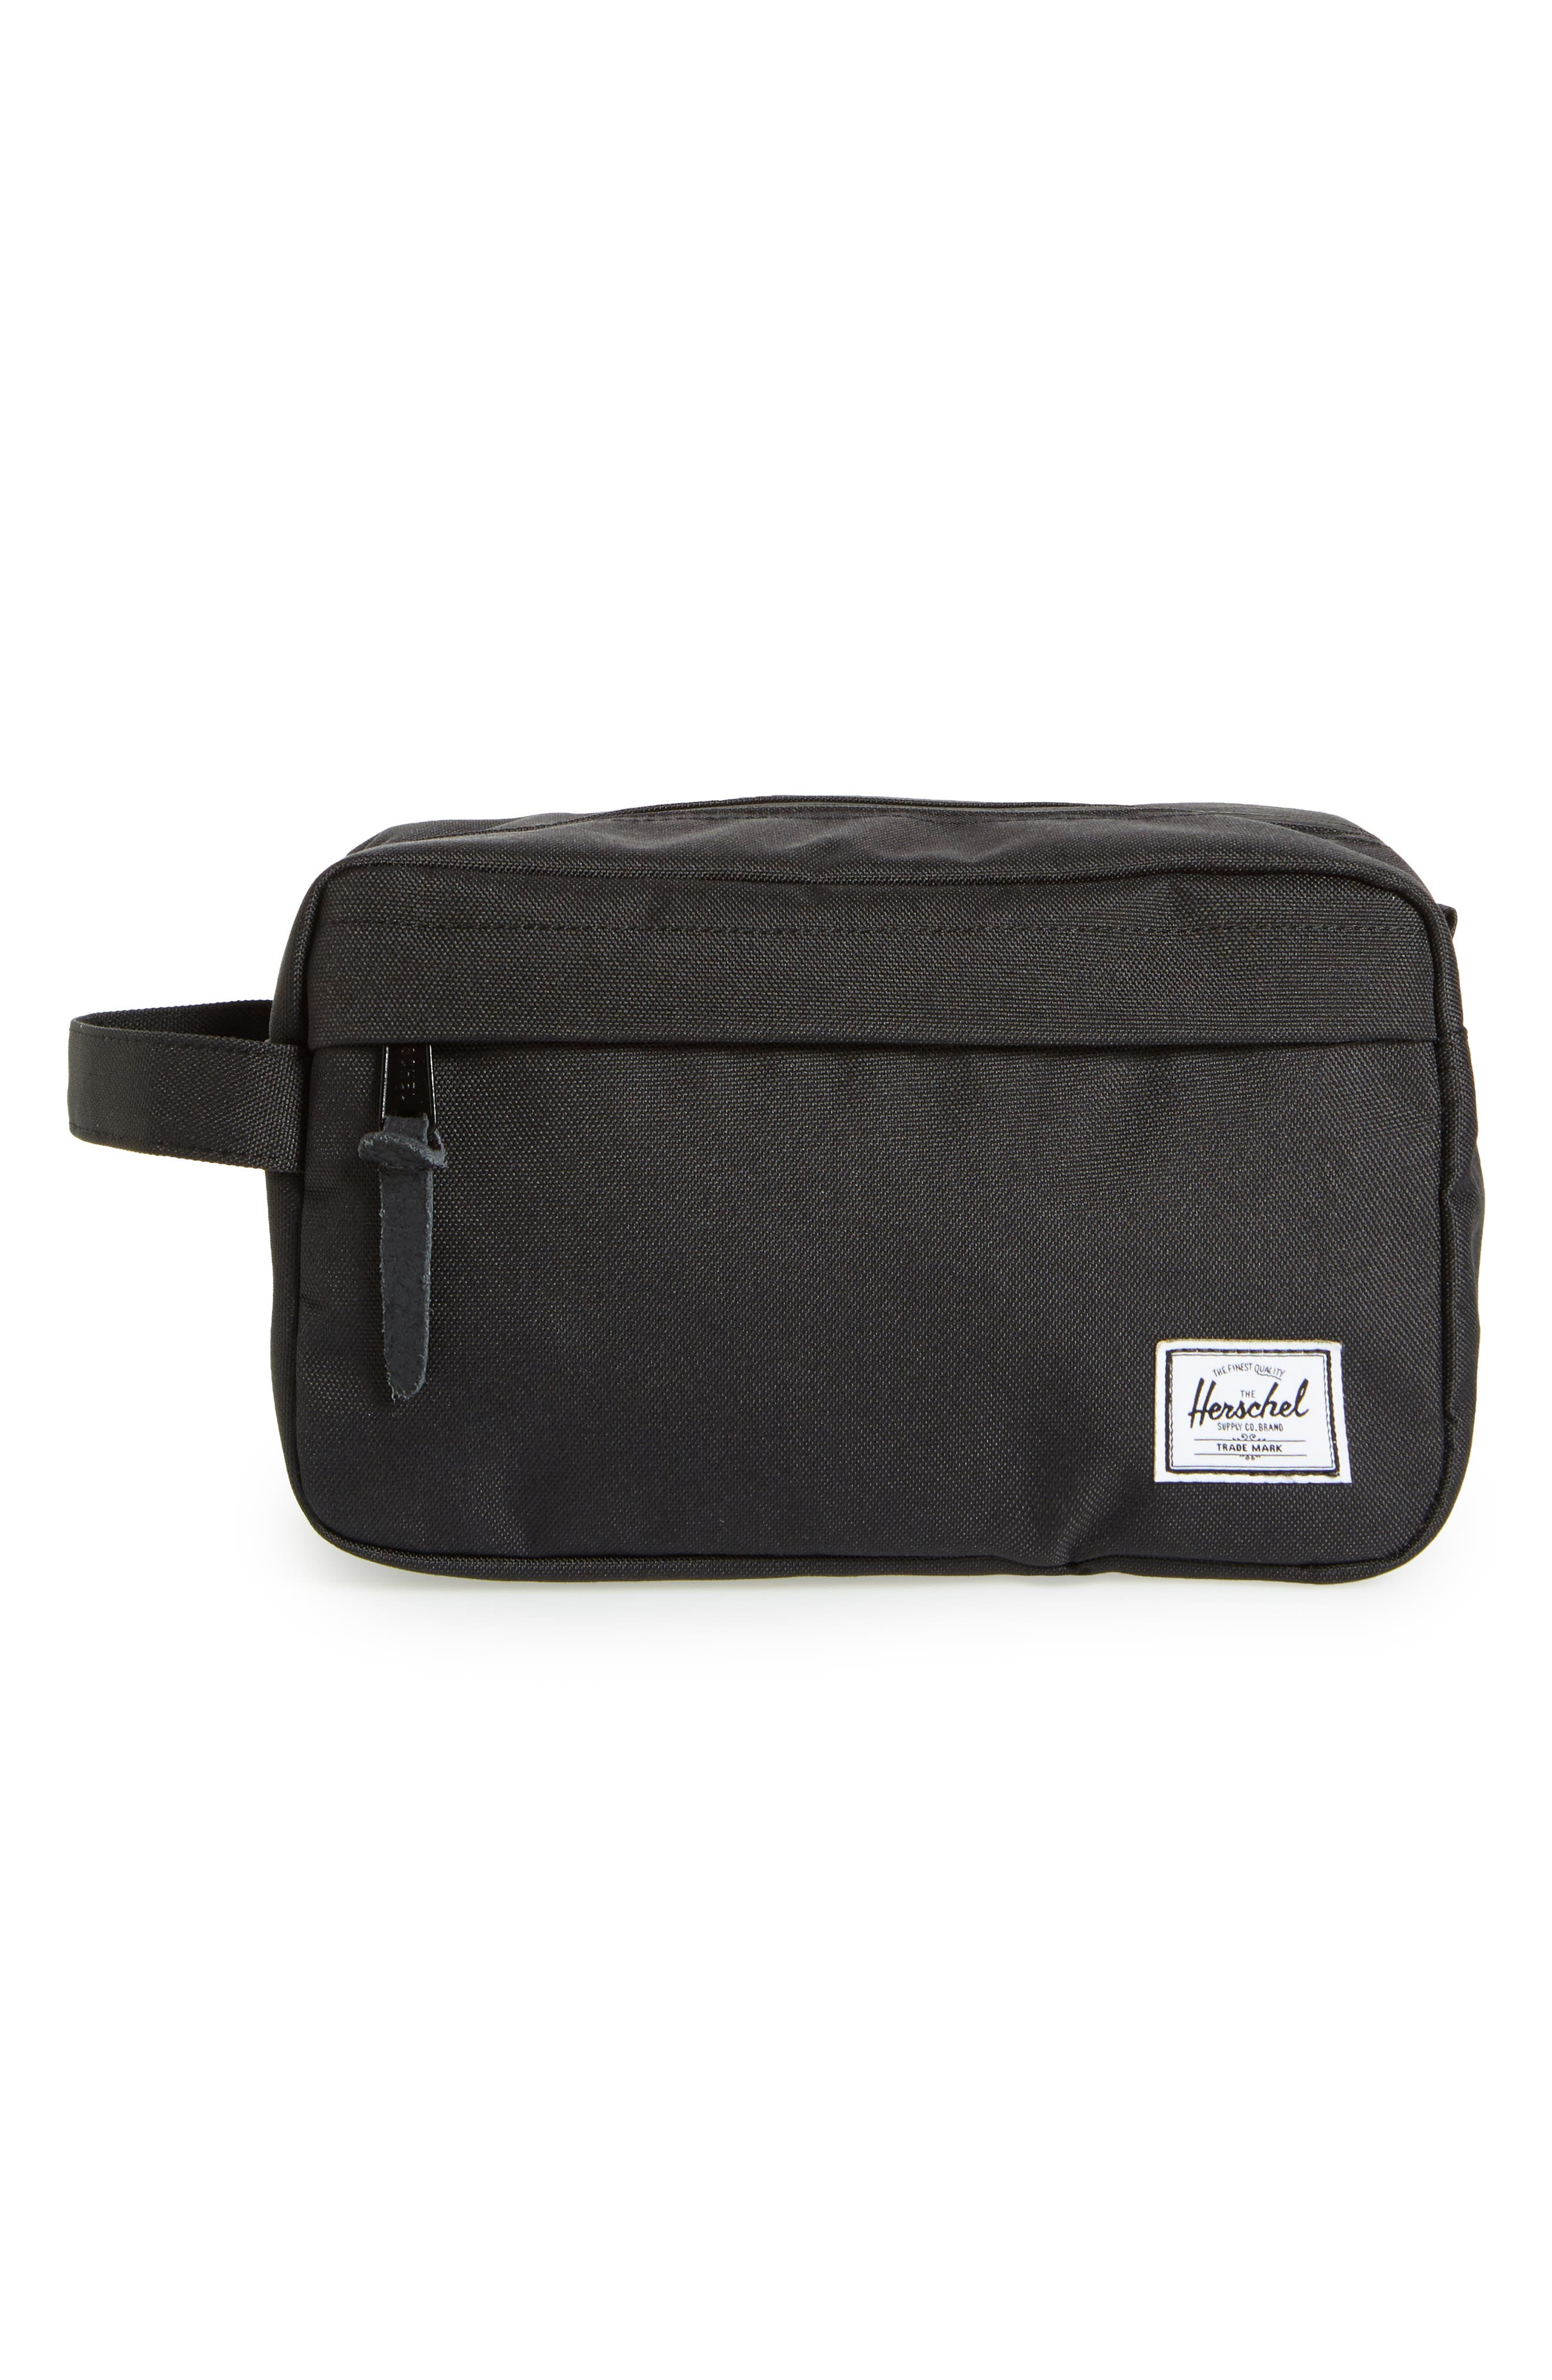 Travel Collection Chapter Toiletry Bag in Black